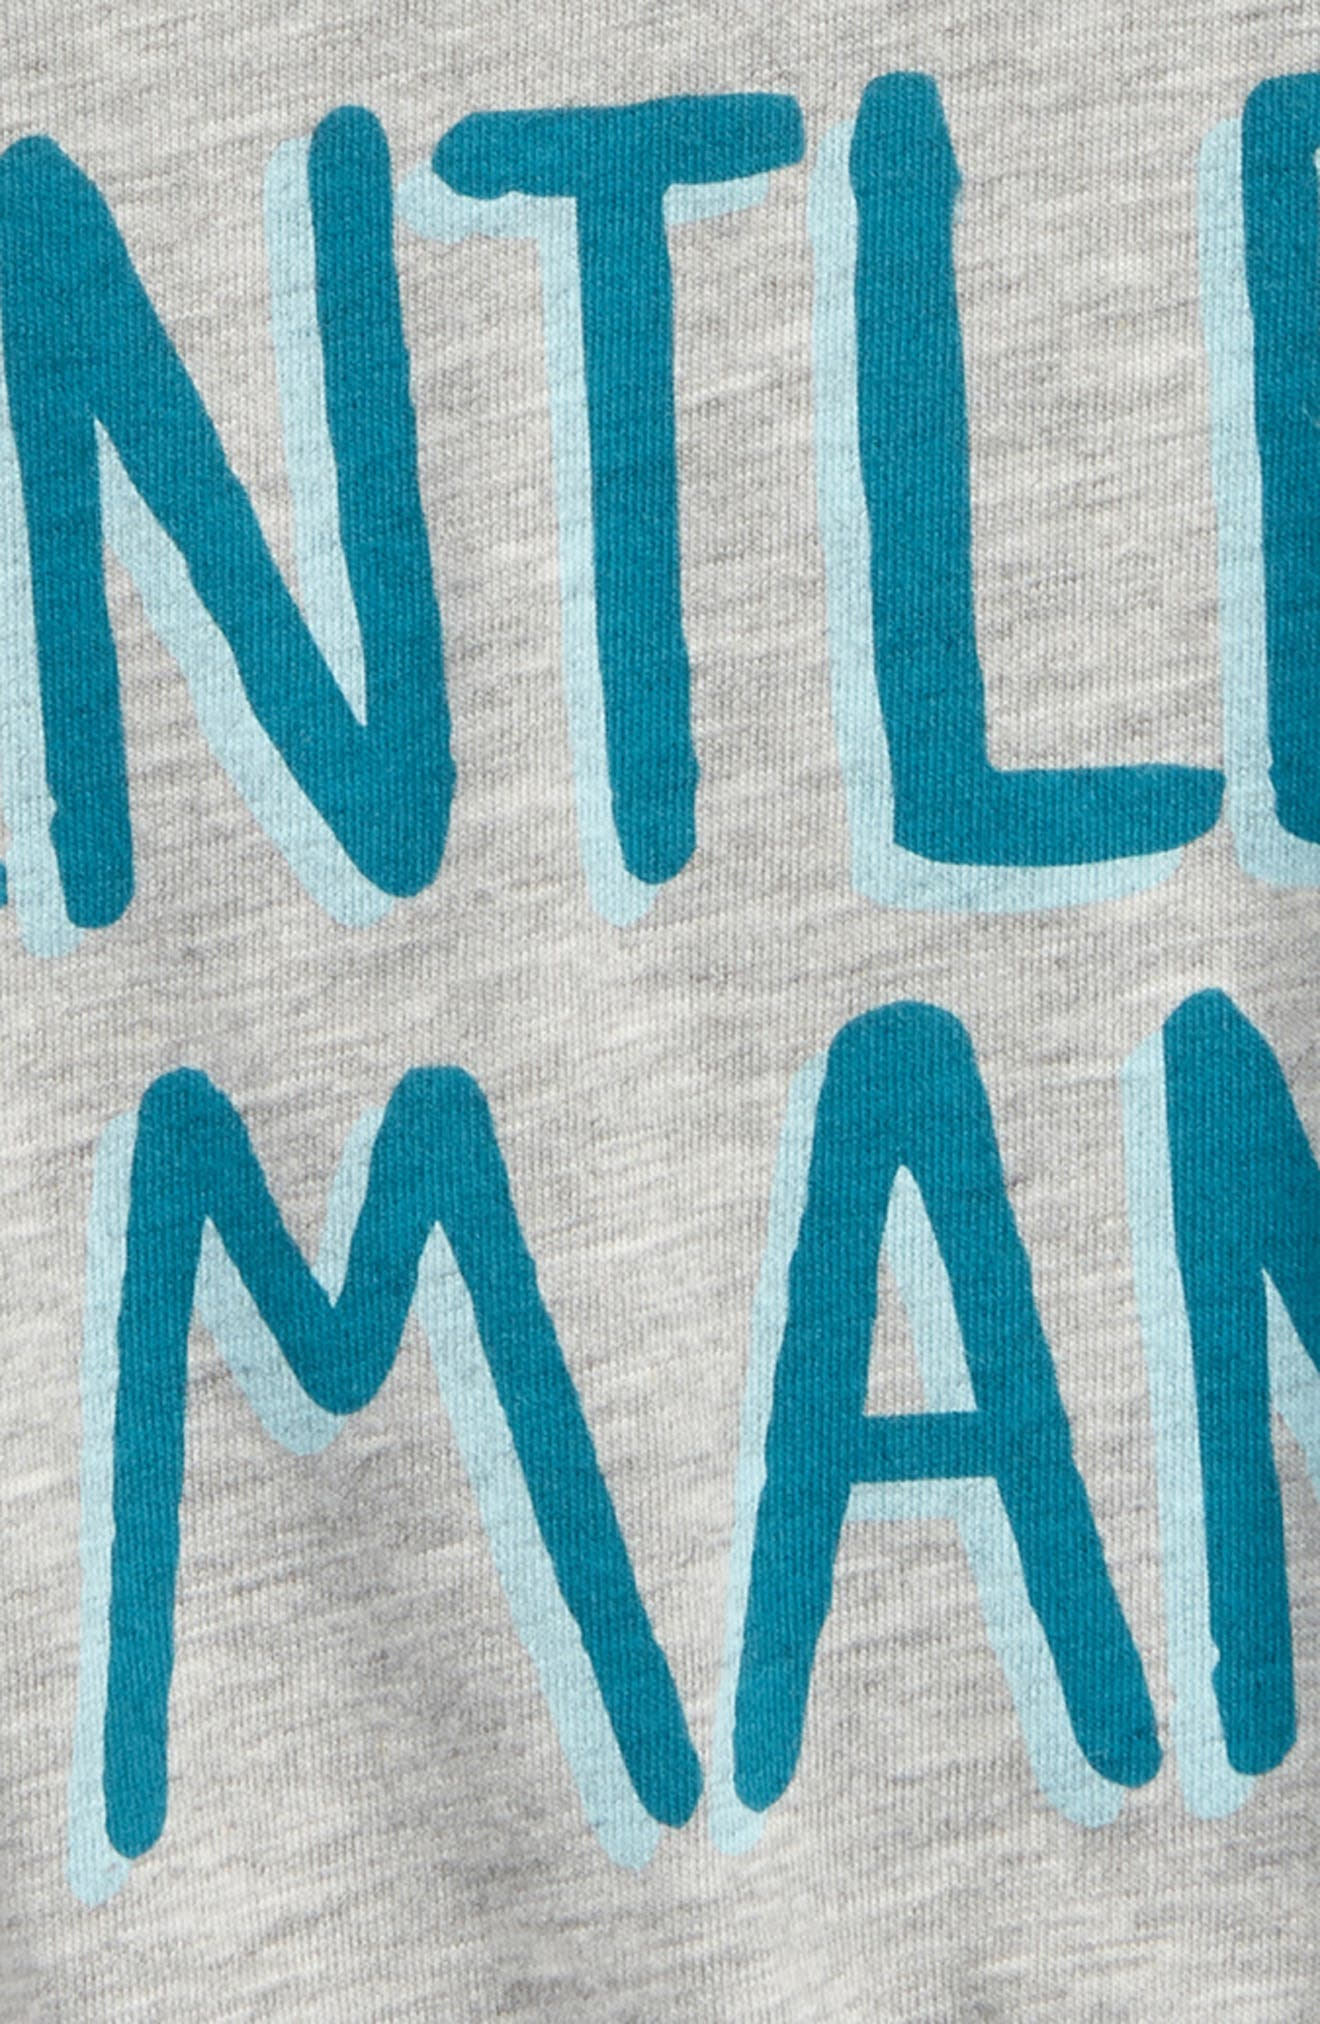 Peek Gentle-Man Graphic T-Shirt,                             Alternate thumbnail 2, color,                             031